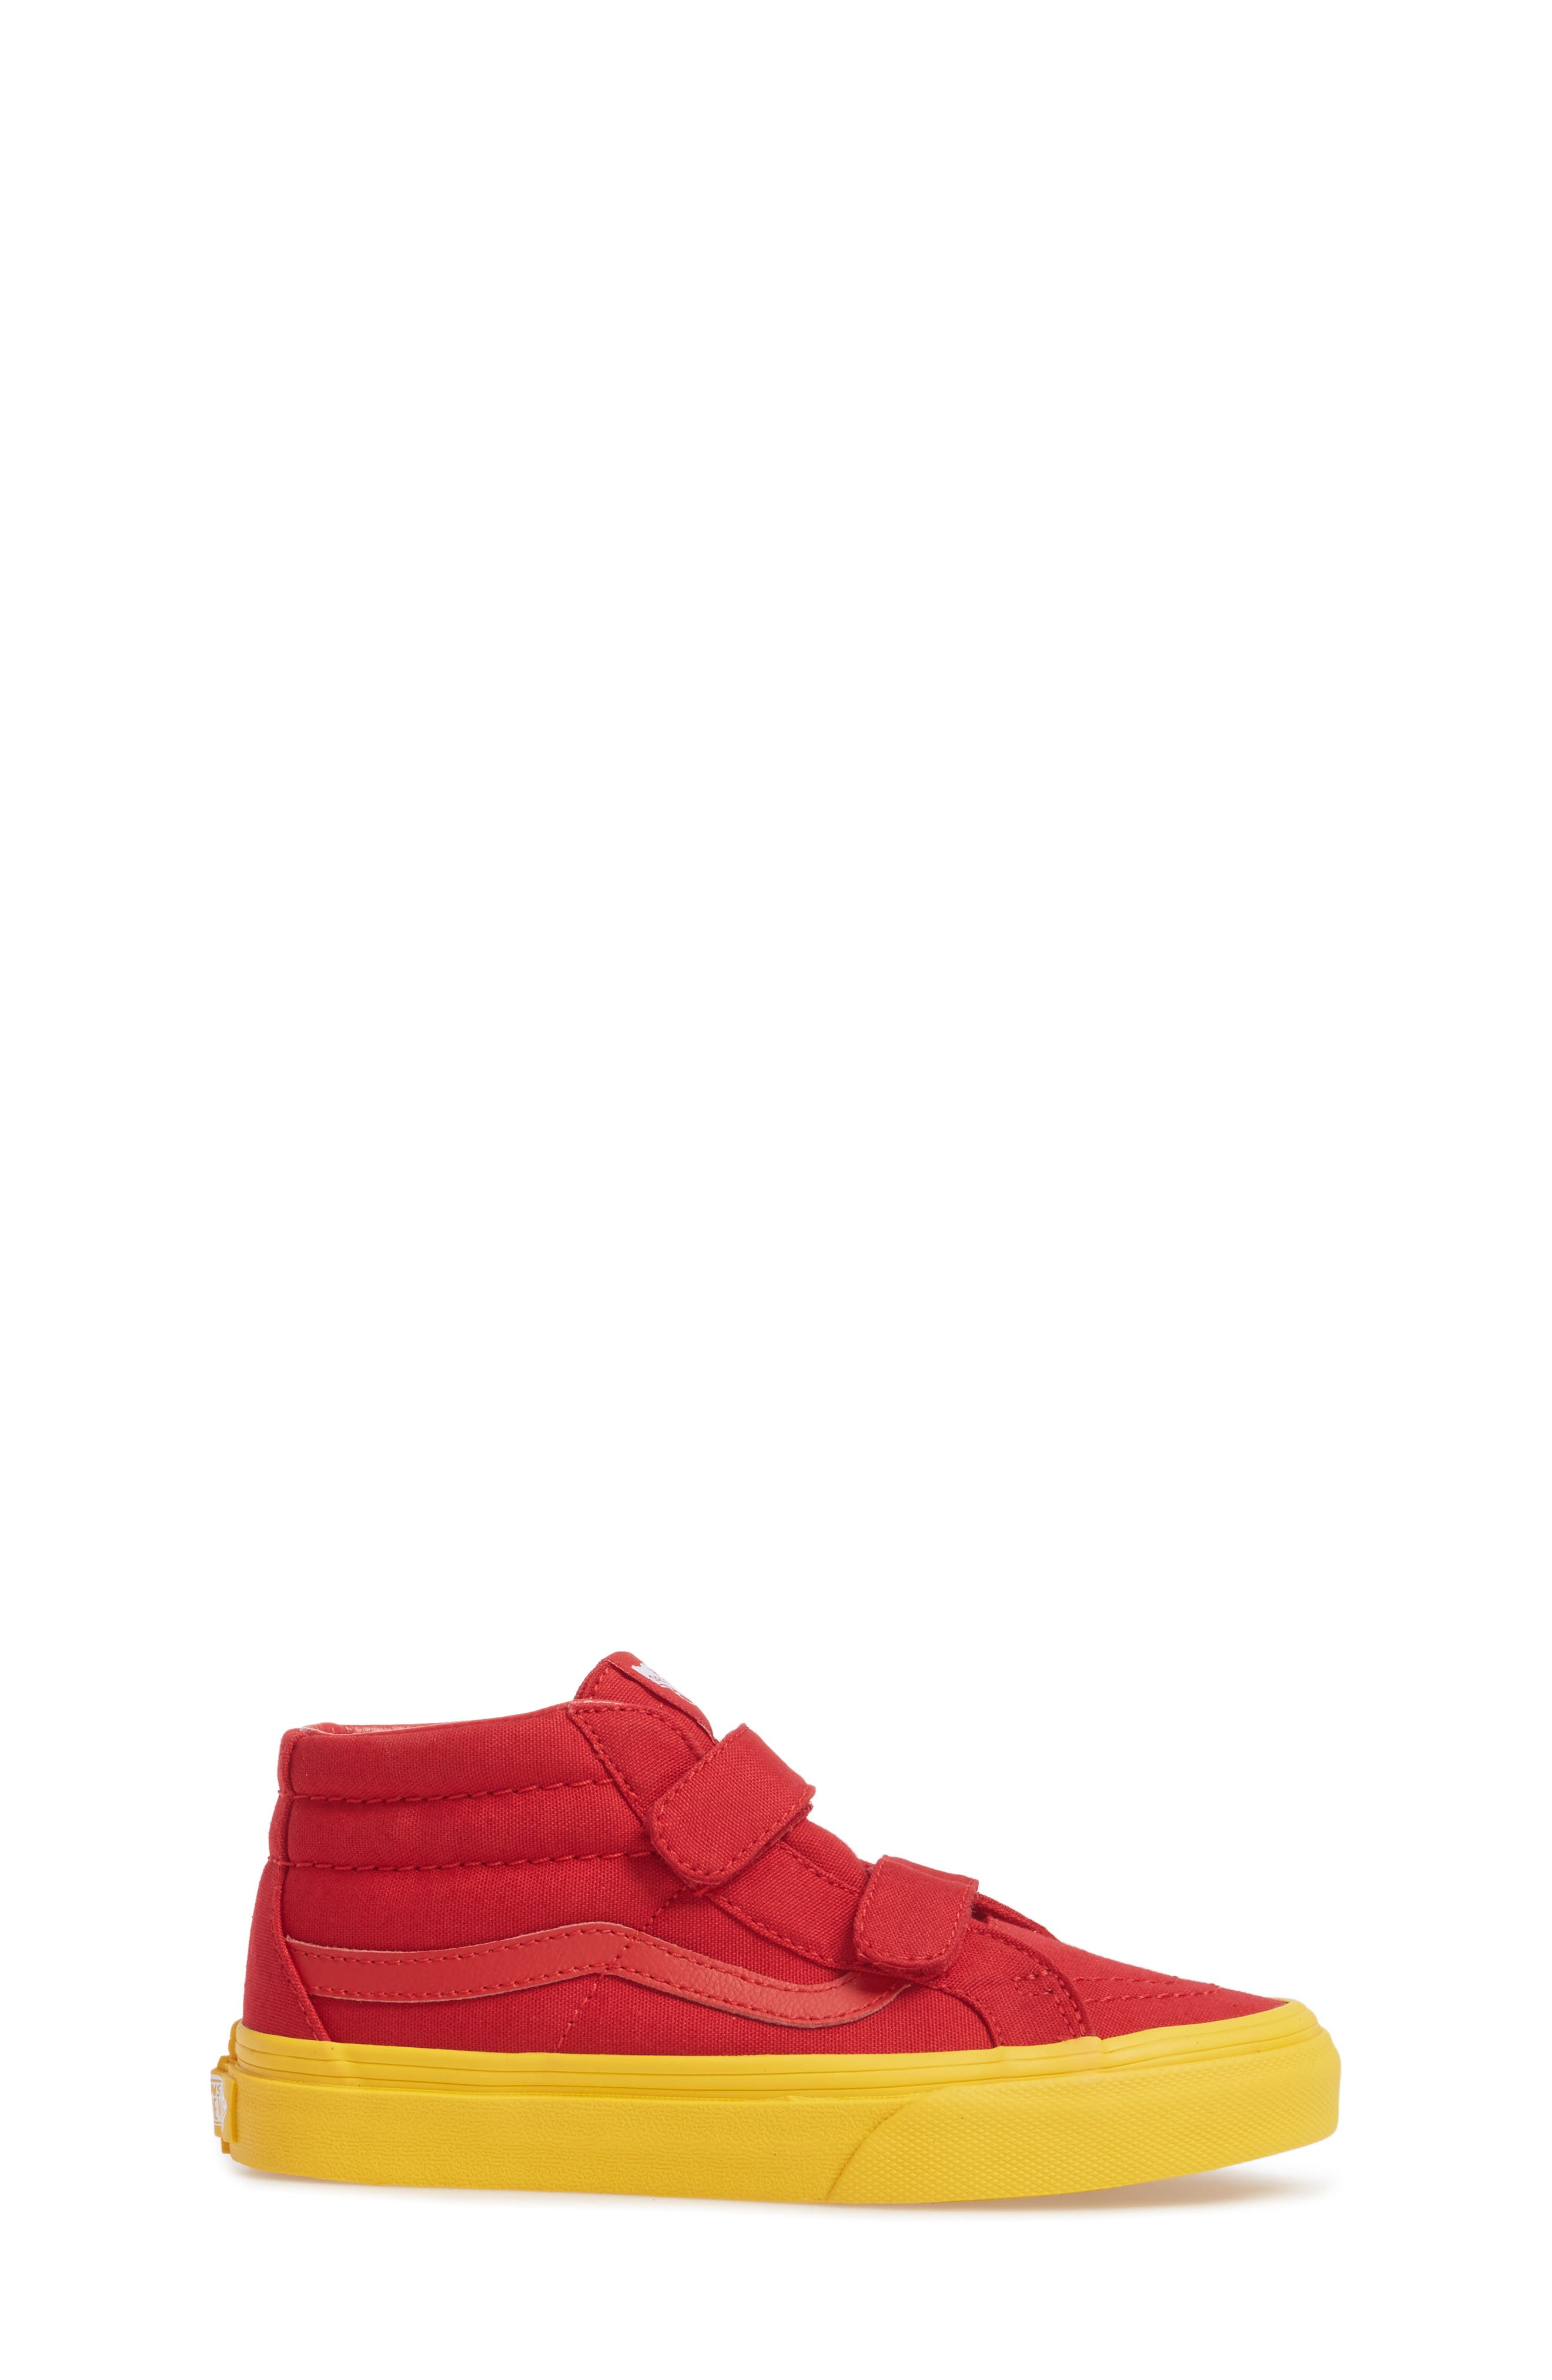 Sk8-Mid Reissue Sneaker,                             Alternate thumbnail 3, color,                             Red/ Gold Cosplay